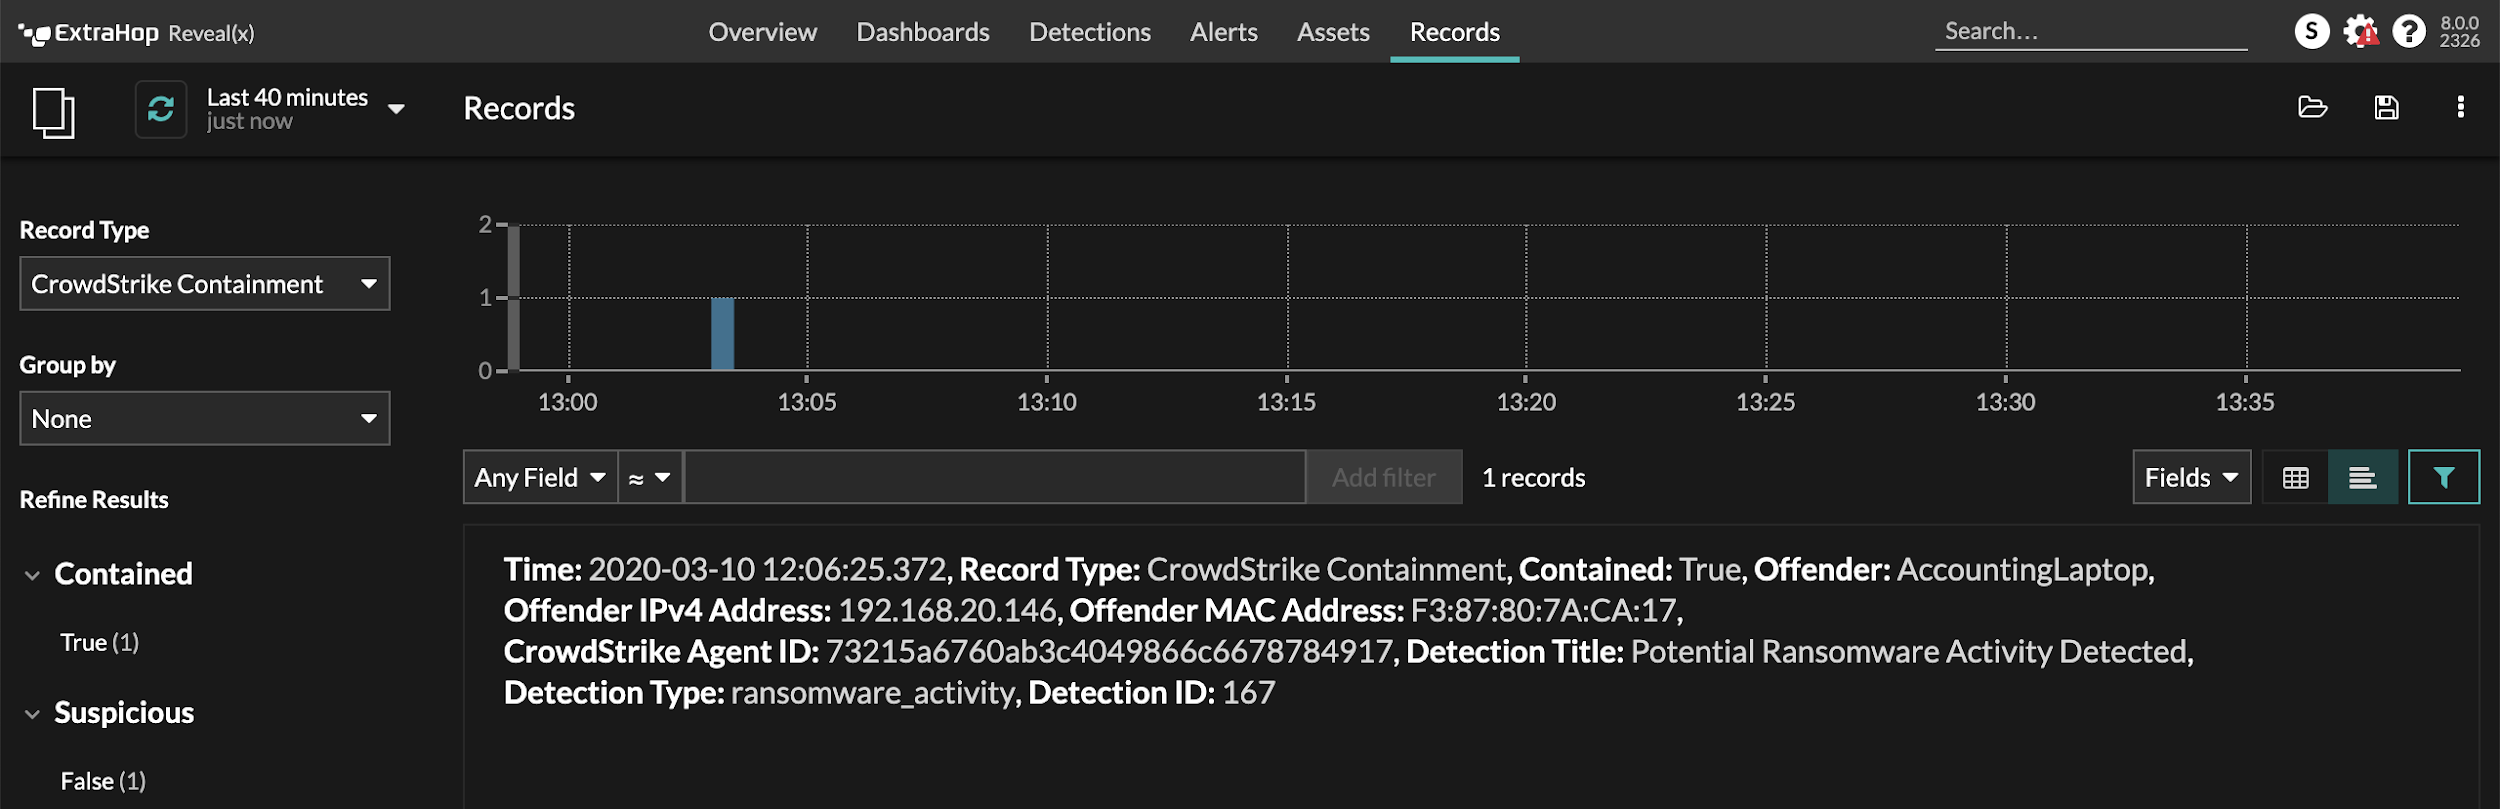 ExtraHop record entry for a successful CrowdStrike Network Containment event